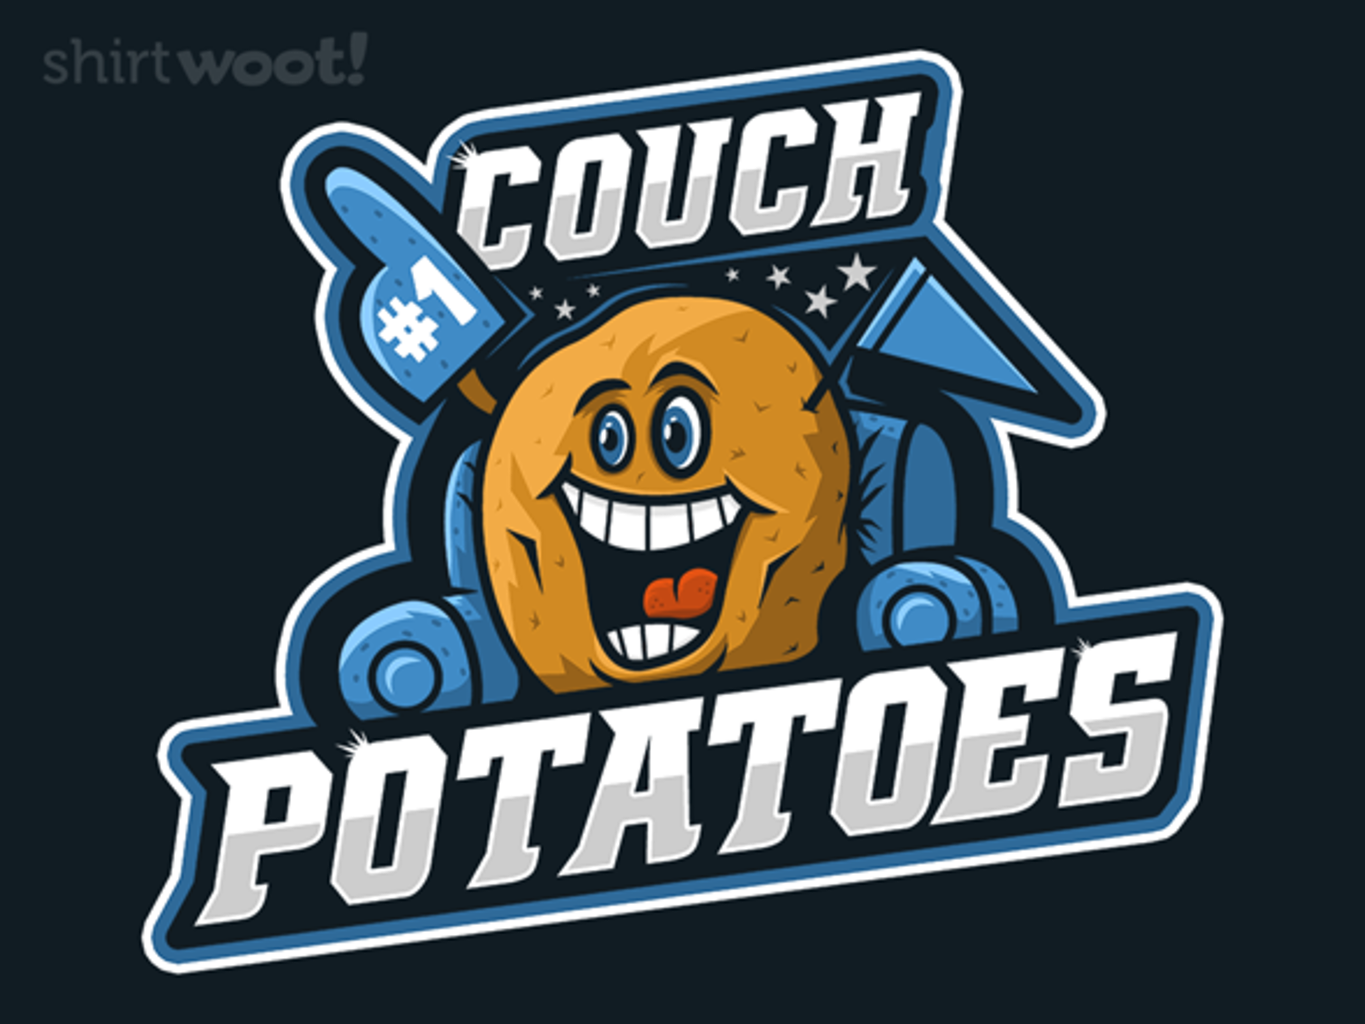 Woot!: The Couch Potatoes